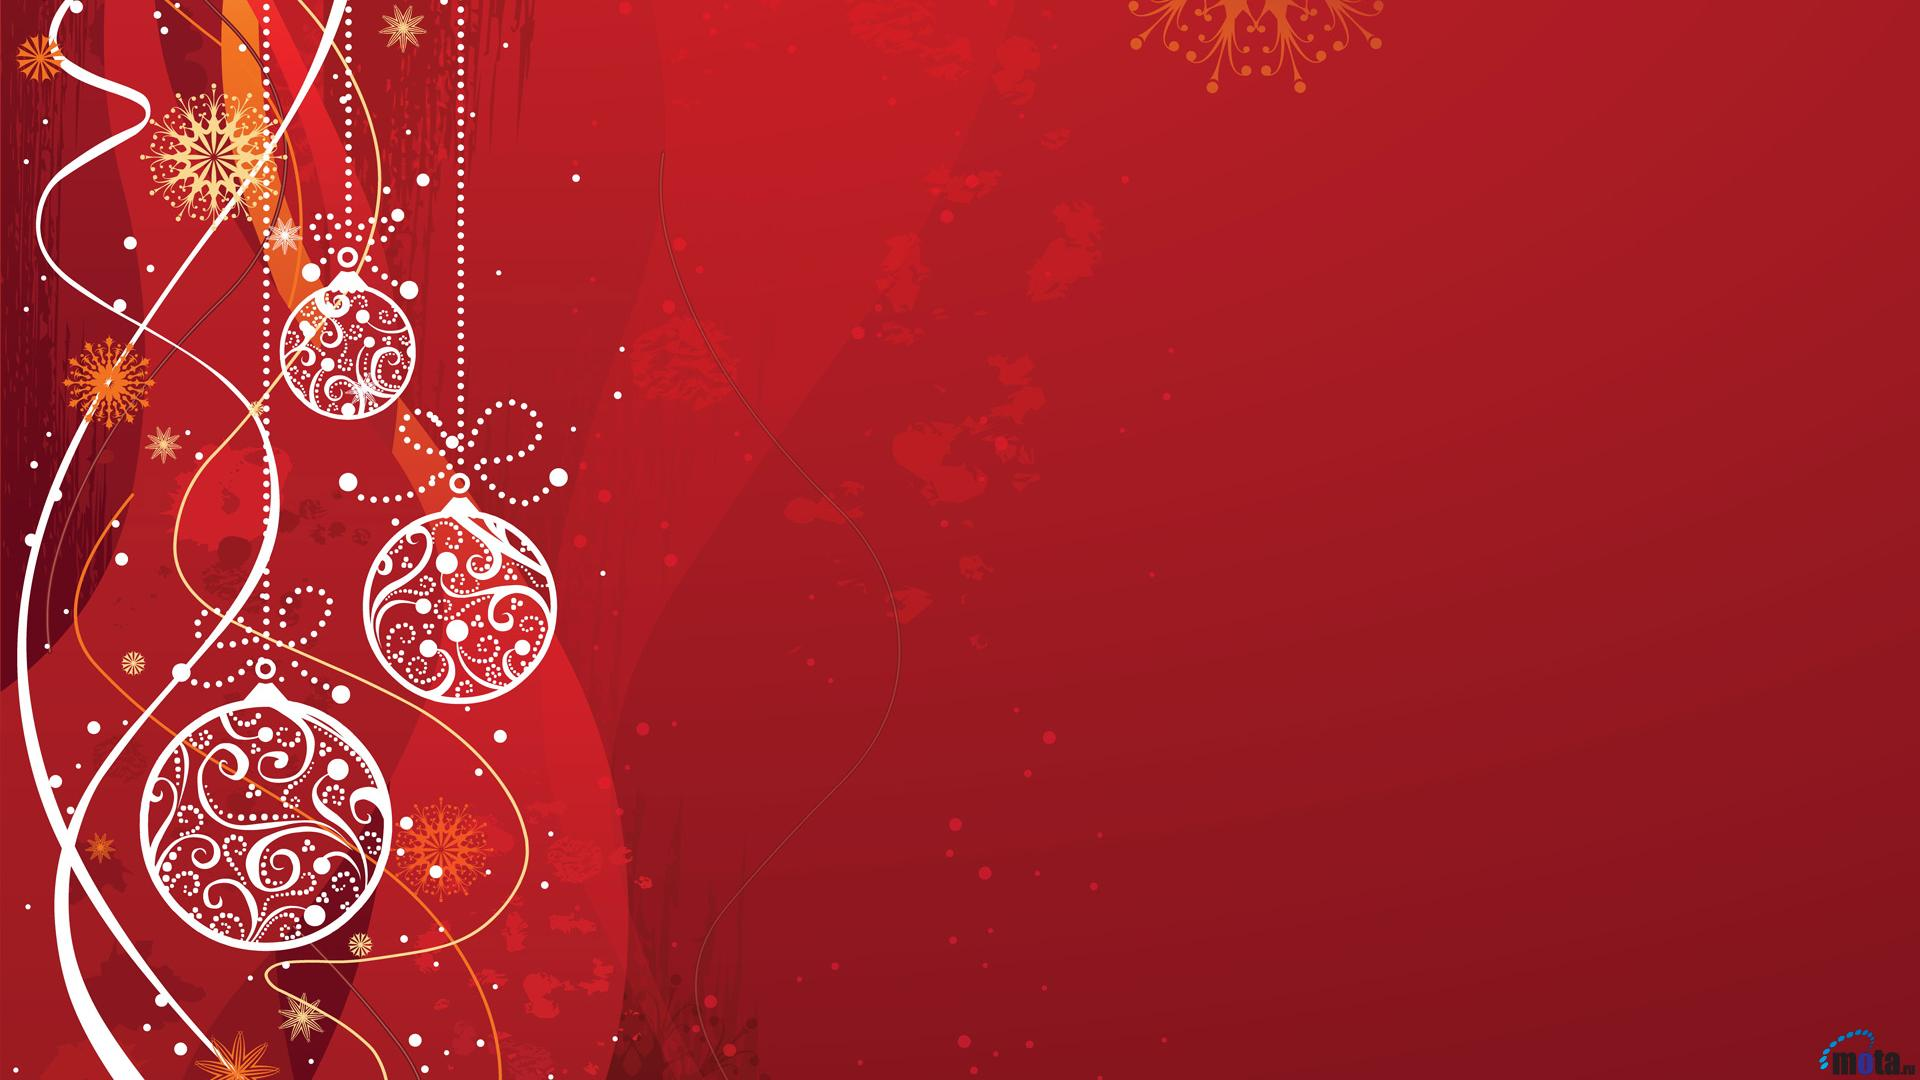 free download wallpapers christmas resolution wallpaper red 1920x1080 1920x1080 for your desktop mobile tablet explore 72 red christmas background red christmas wallpapers red christmas wallpapers